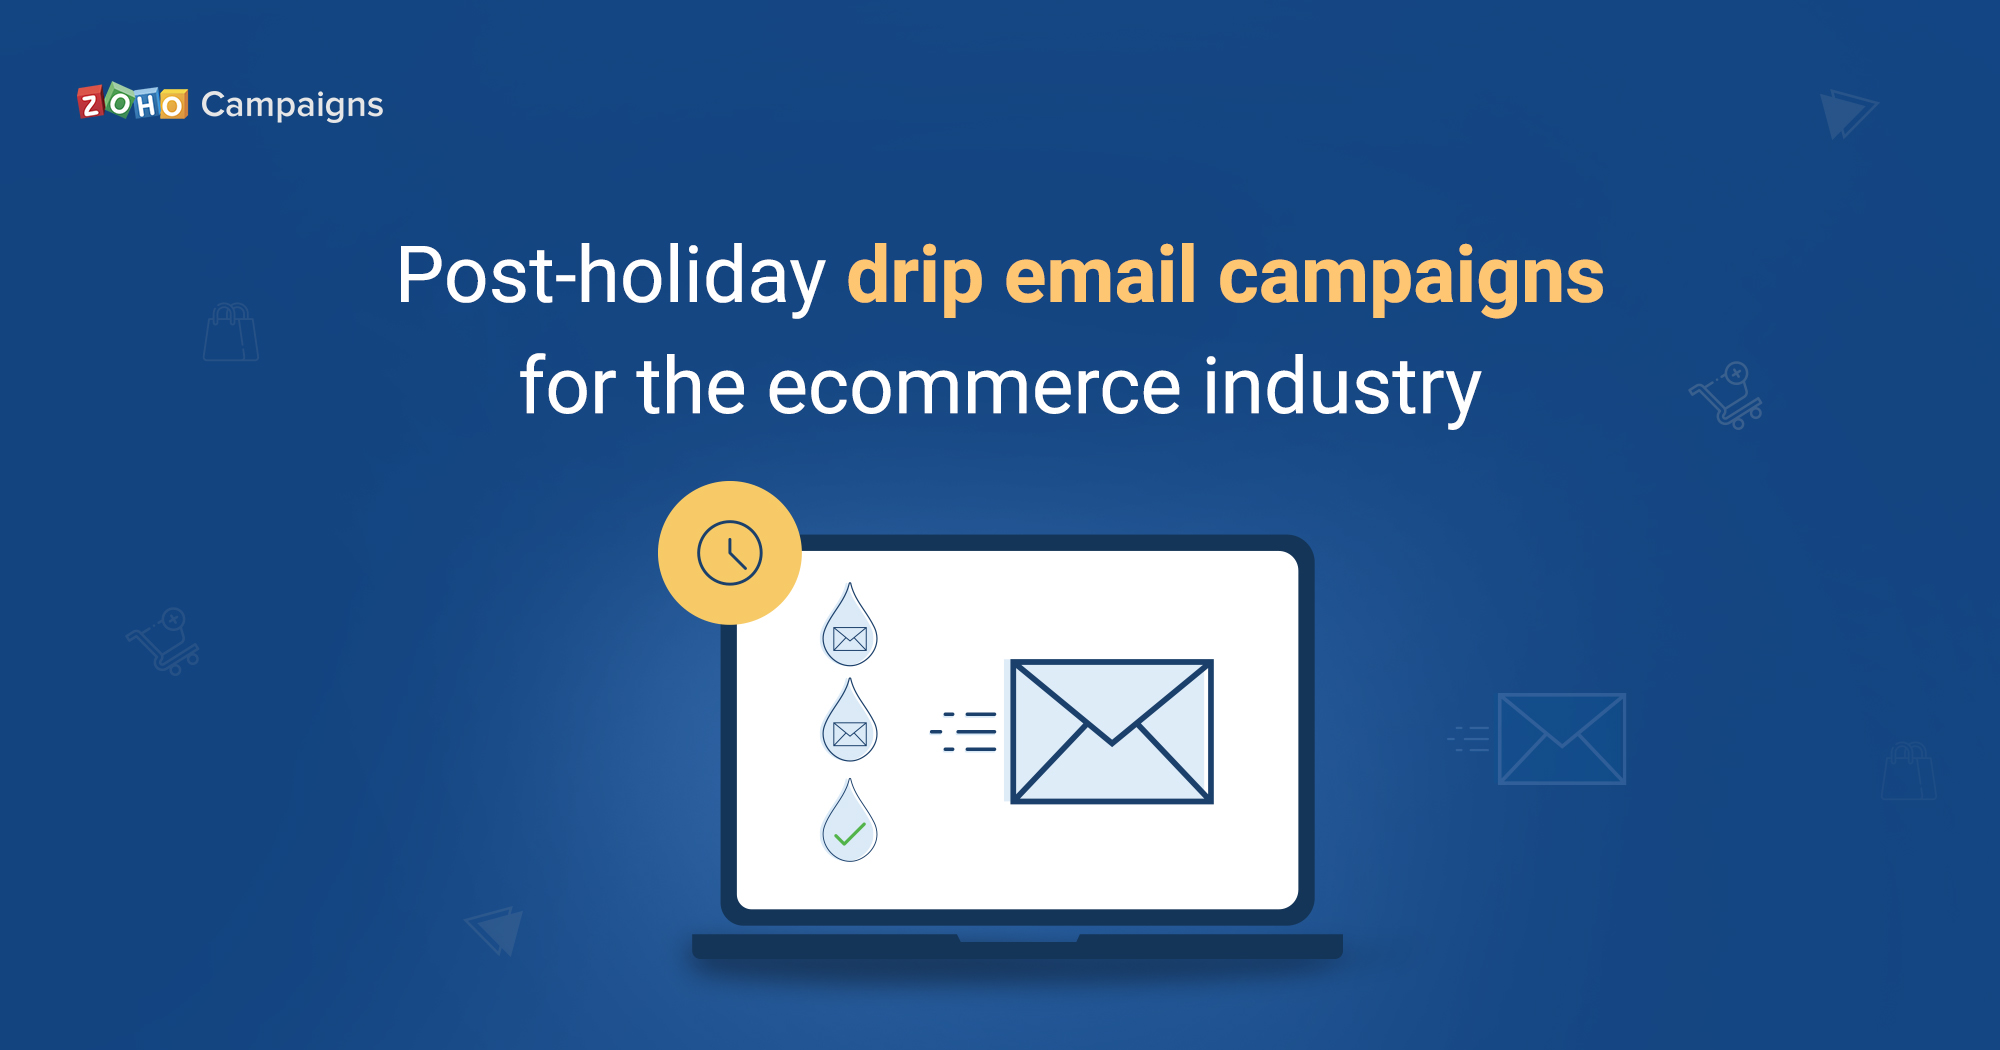 Post-holiday drip email campaigns for the ecommerce industry